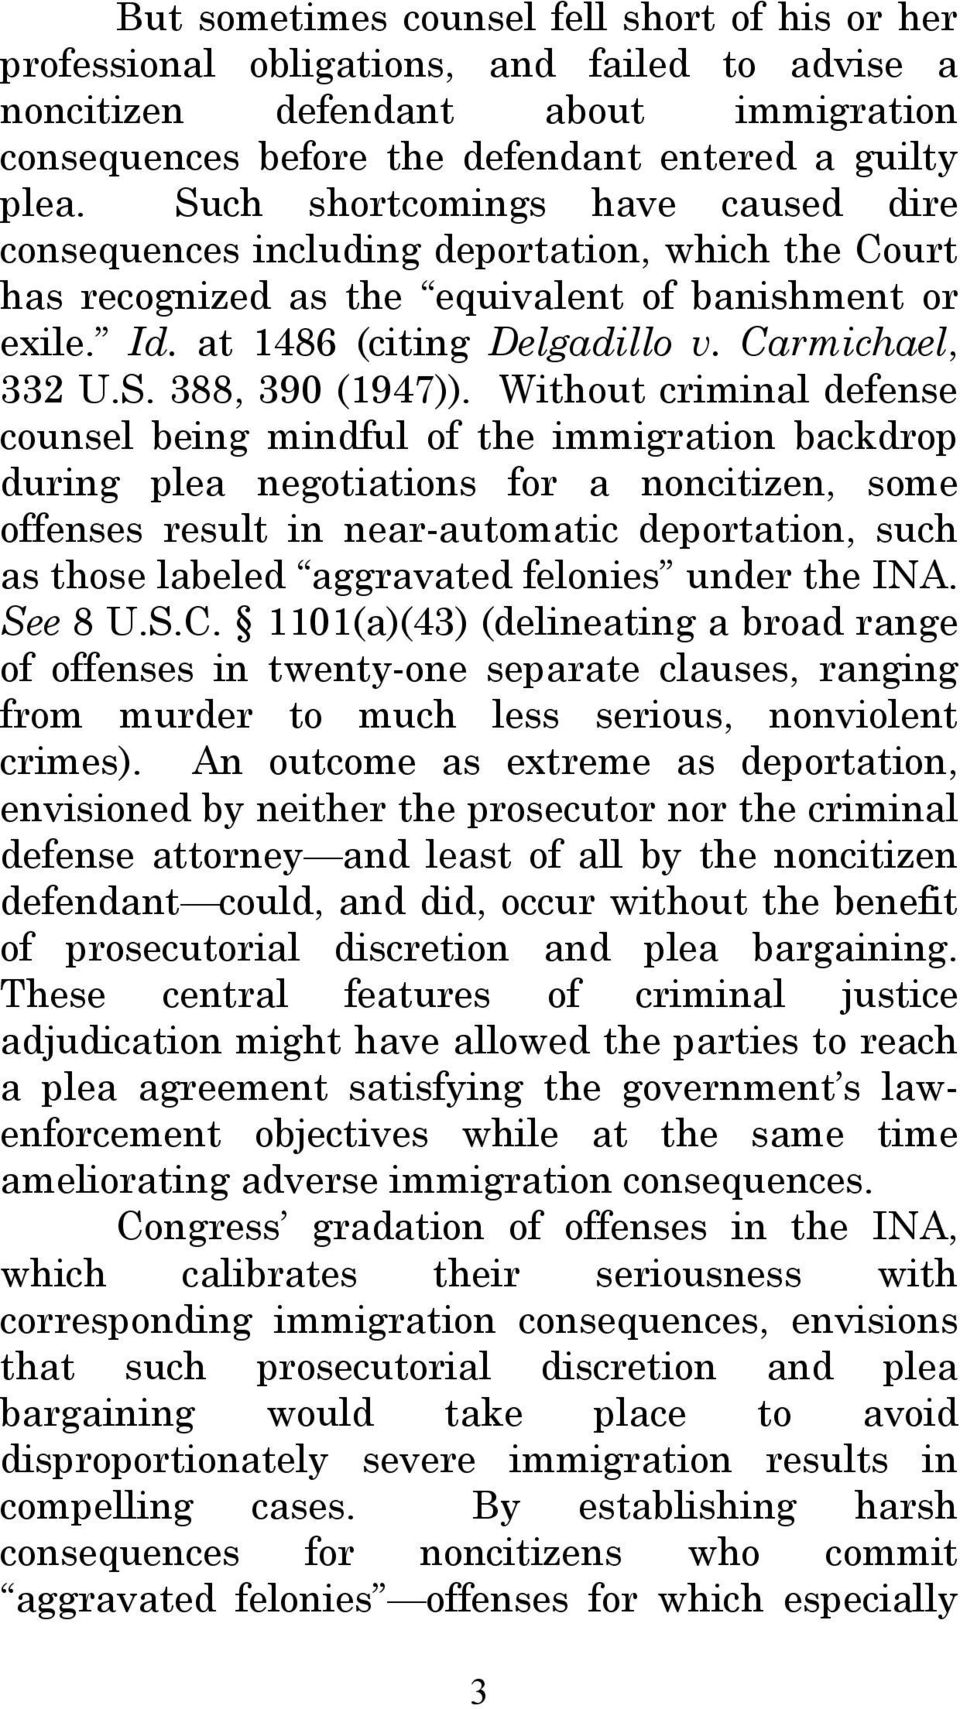 Without criminal defense counsel being mindful of the immigration backdrop during plea negotiations for a noncitizen, some offenses result in near-automatic deportation, such as those labeled